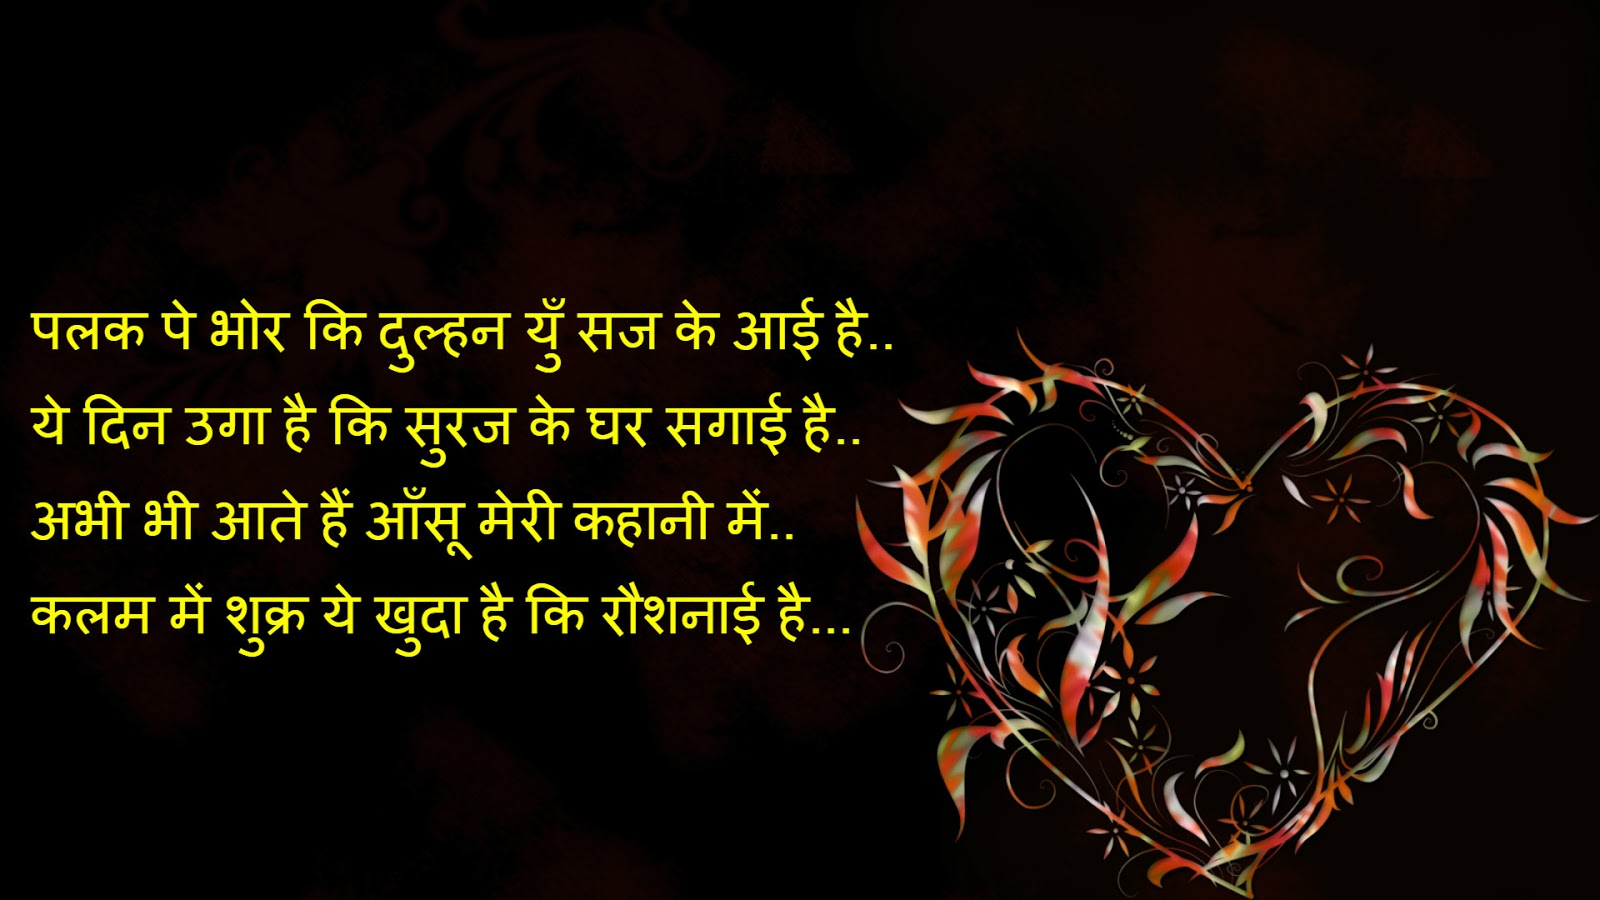 Wallpaper download english - All Hindi Hindi Dard Bhari Shayari Photos Dosti In English Love Romantic Image For Hindi Shayari